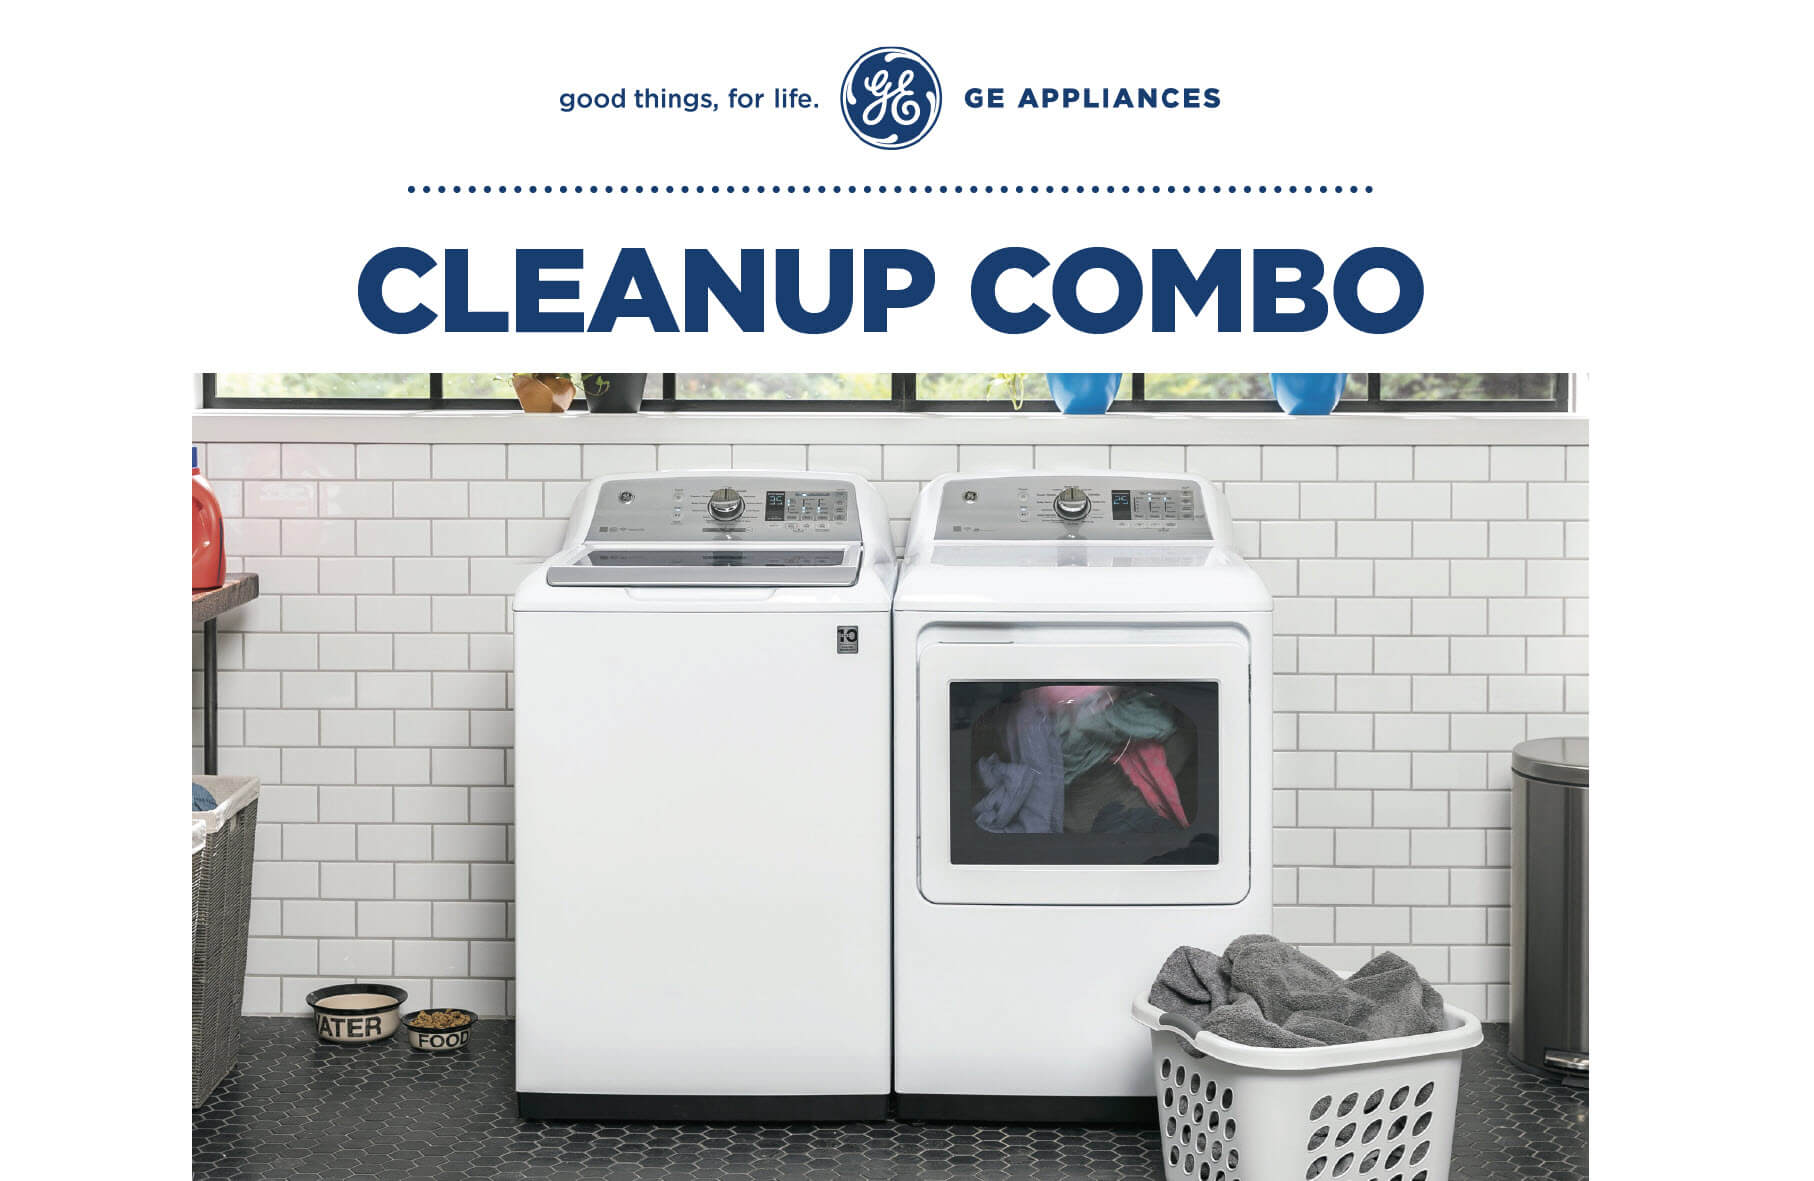 GE Appliances Cleanup Combo